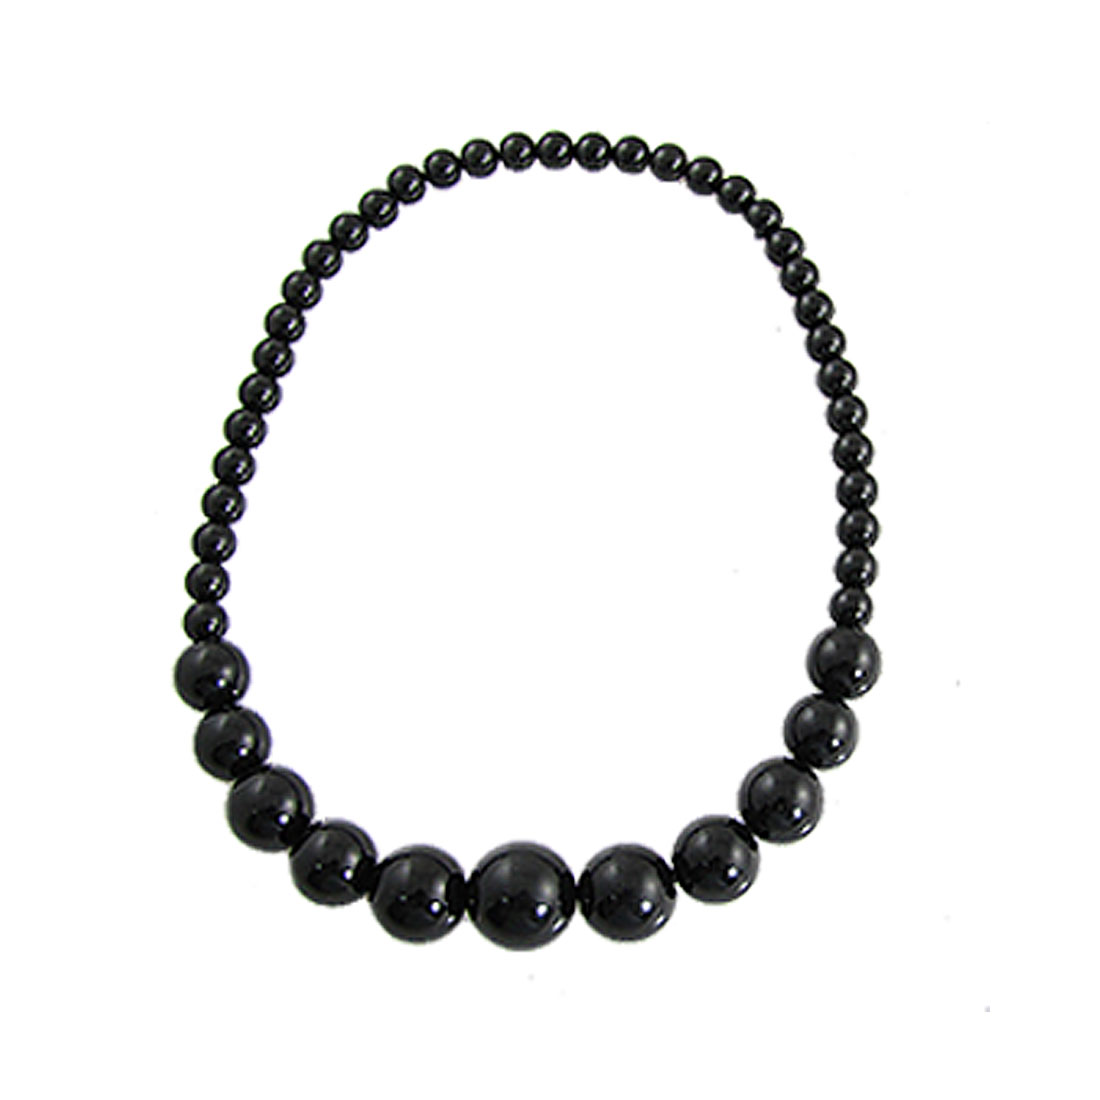 Elastic String Black Plastic Different Size Beads Necklace